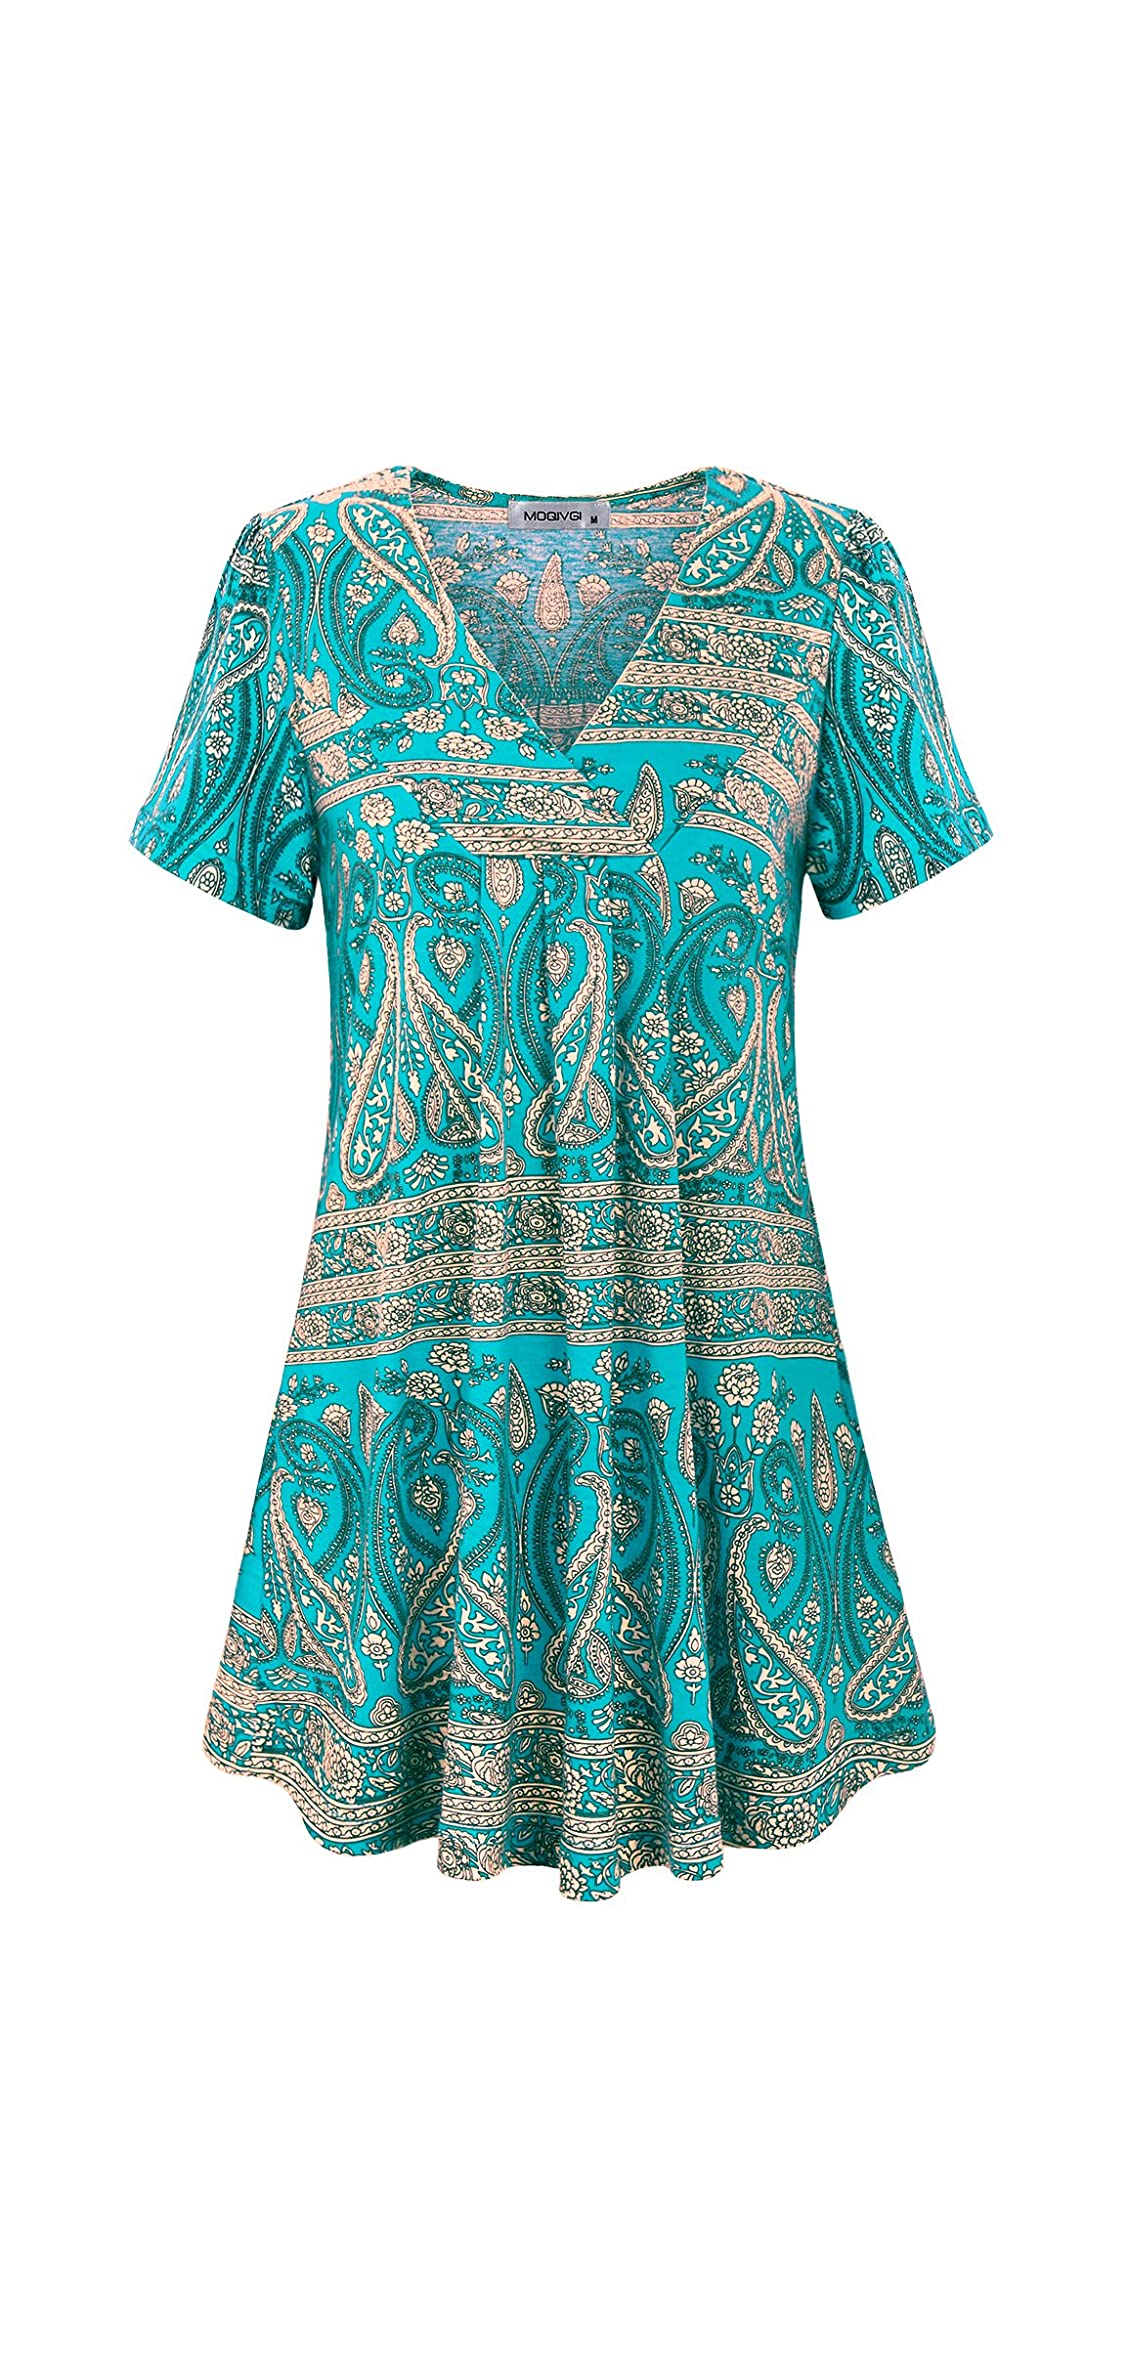 Womens V Neck Printed Loose Fit Casual Blouse Top Tunic